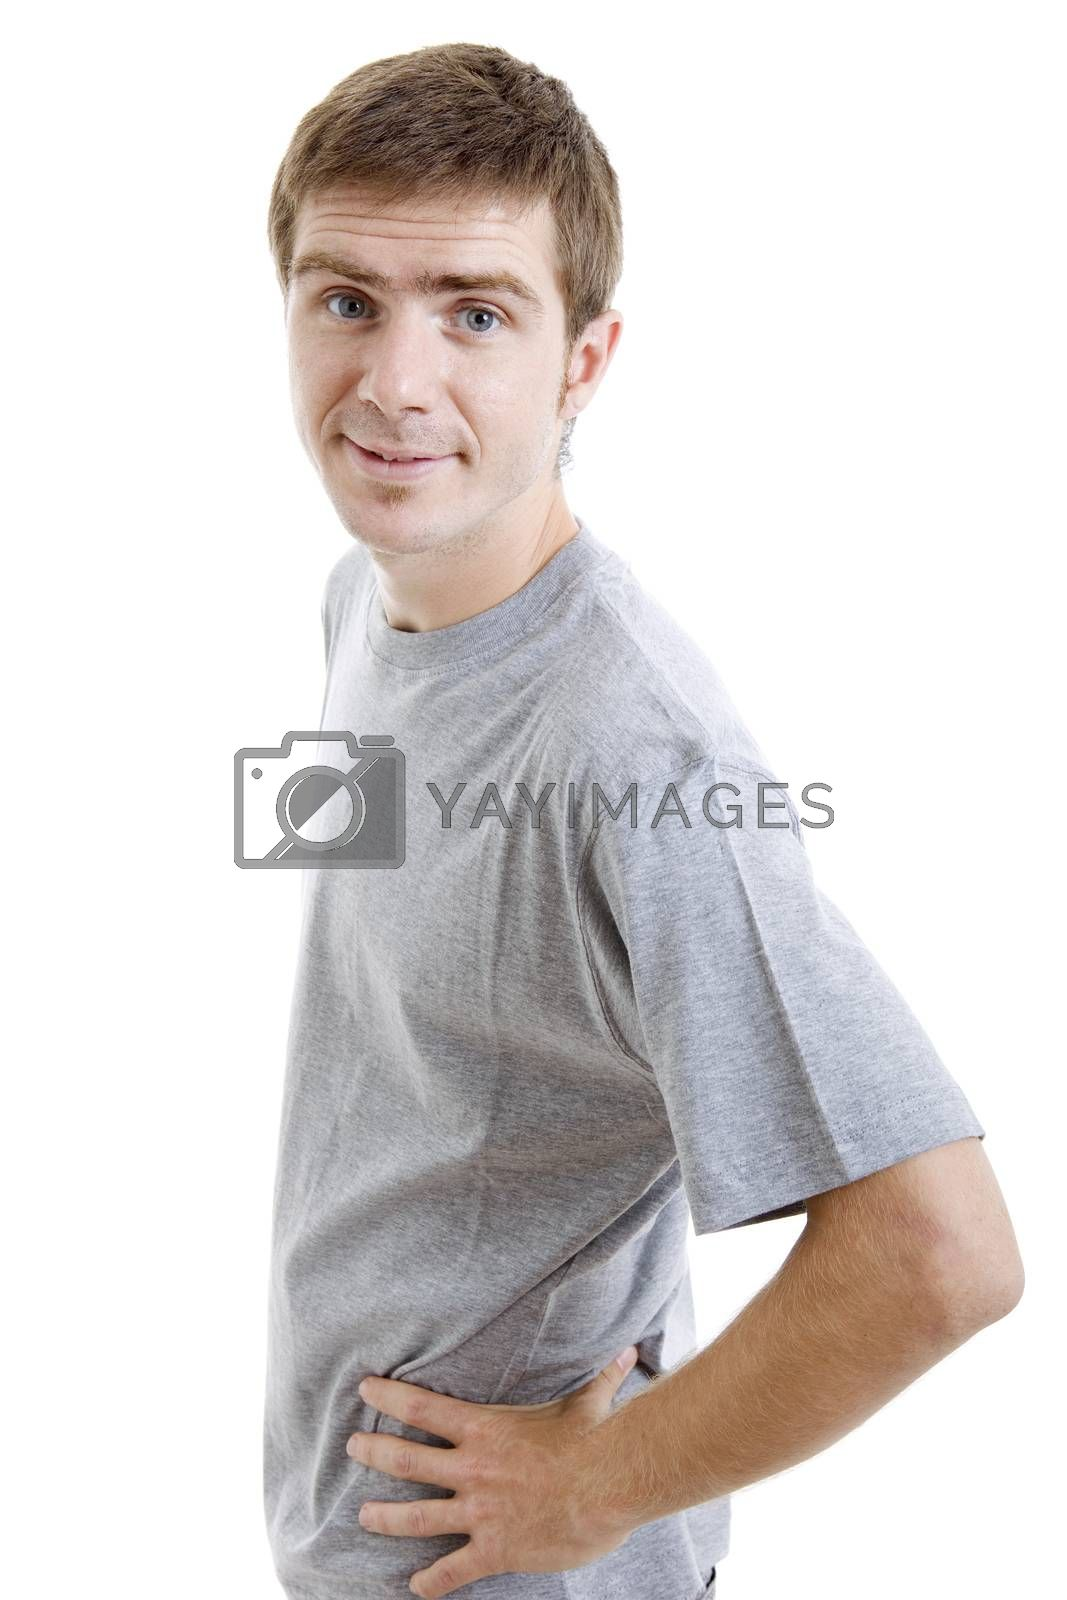 Royalty free image of young man by zittto